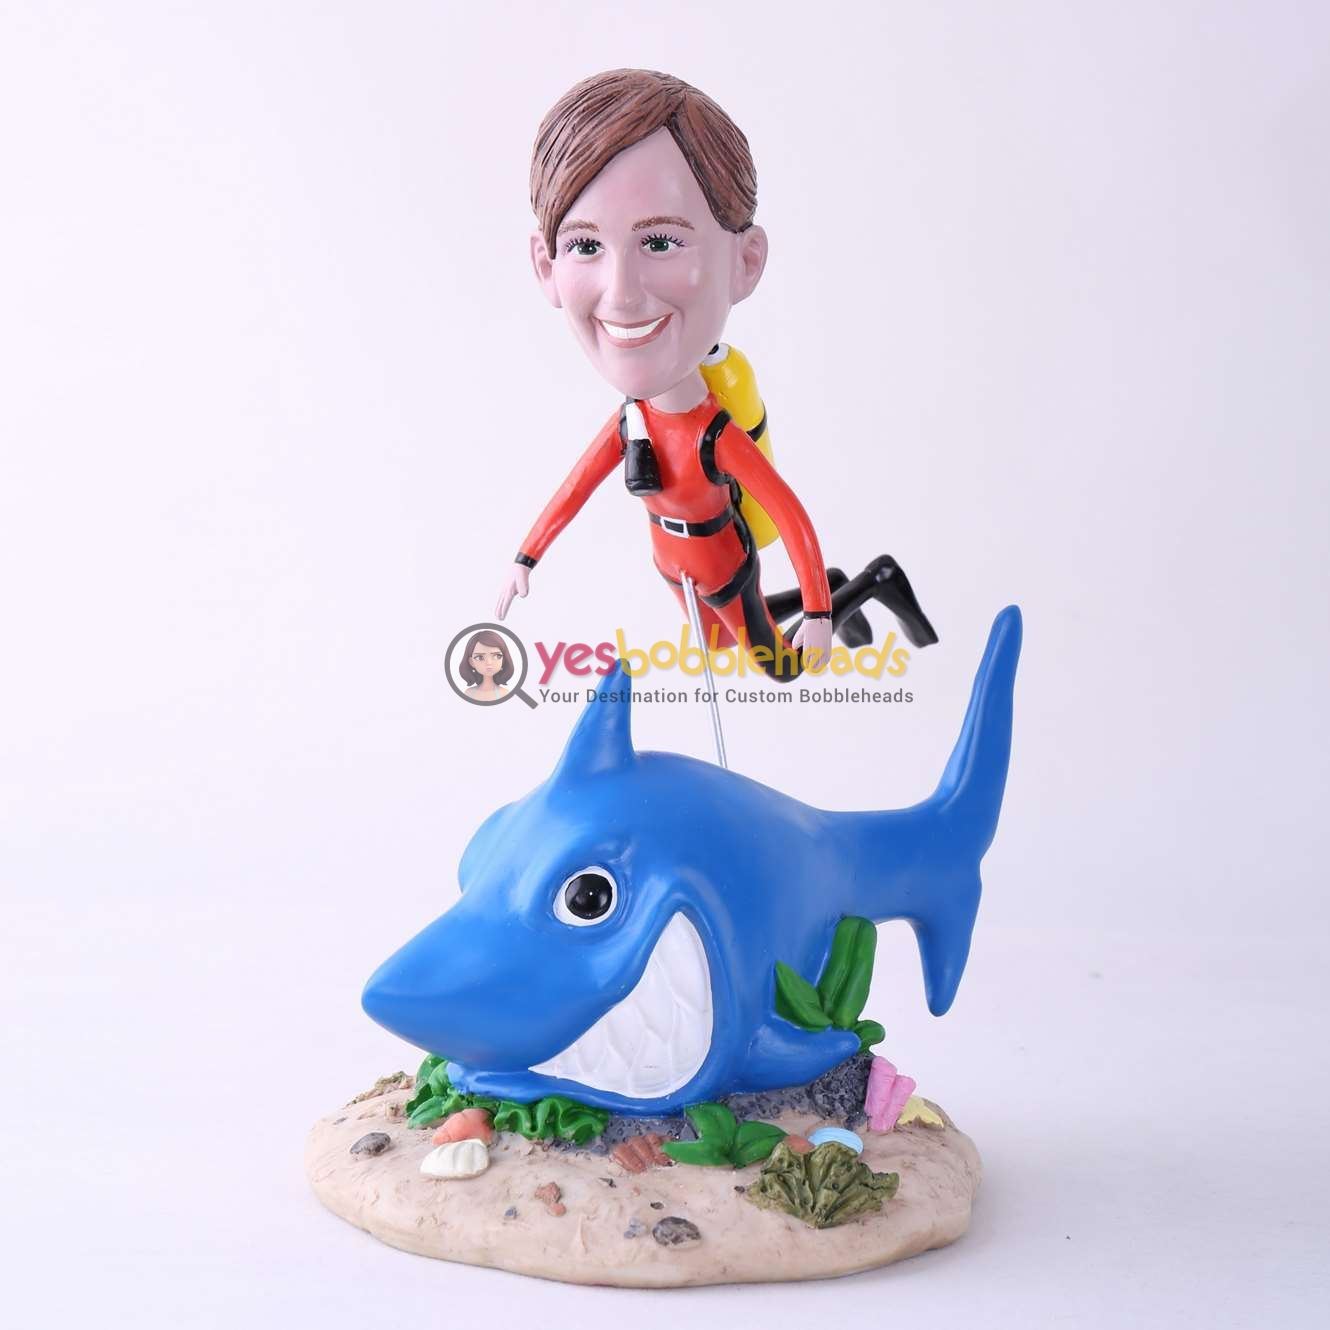 Picture of Custom Bobblehead Doll: Scuba Diving Woman